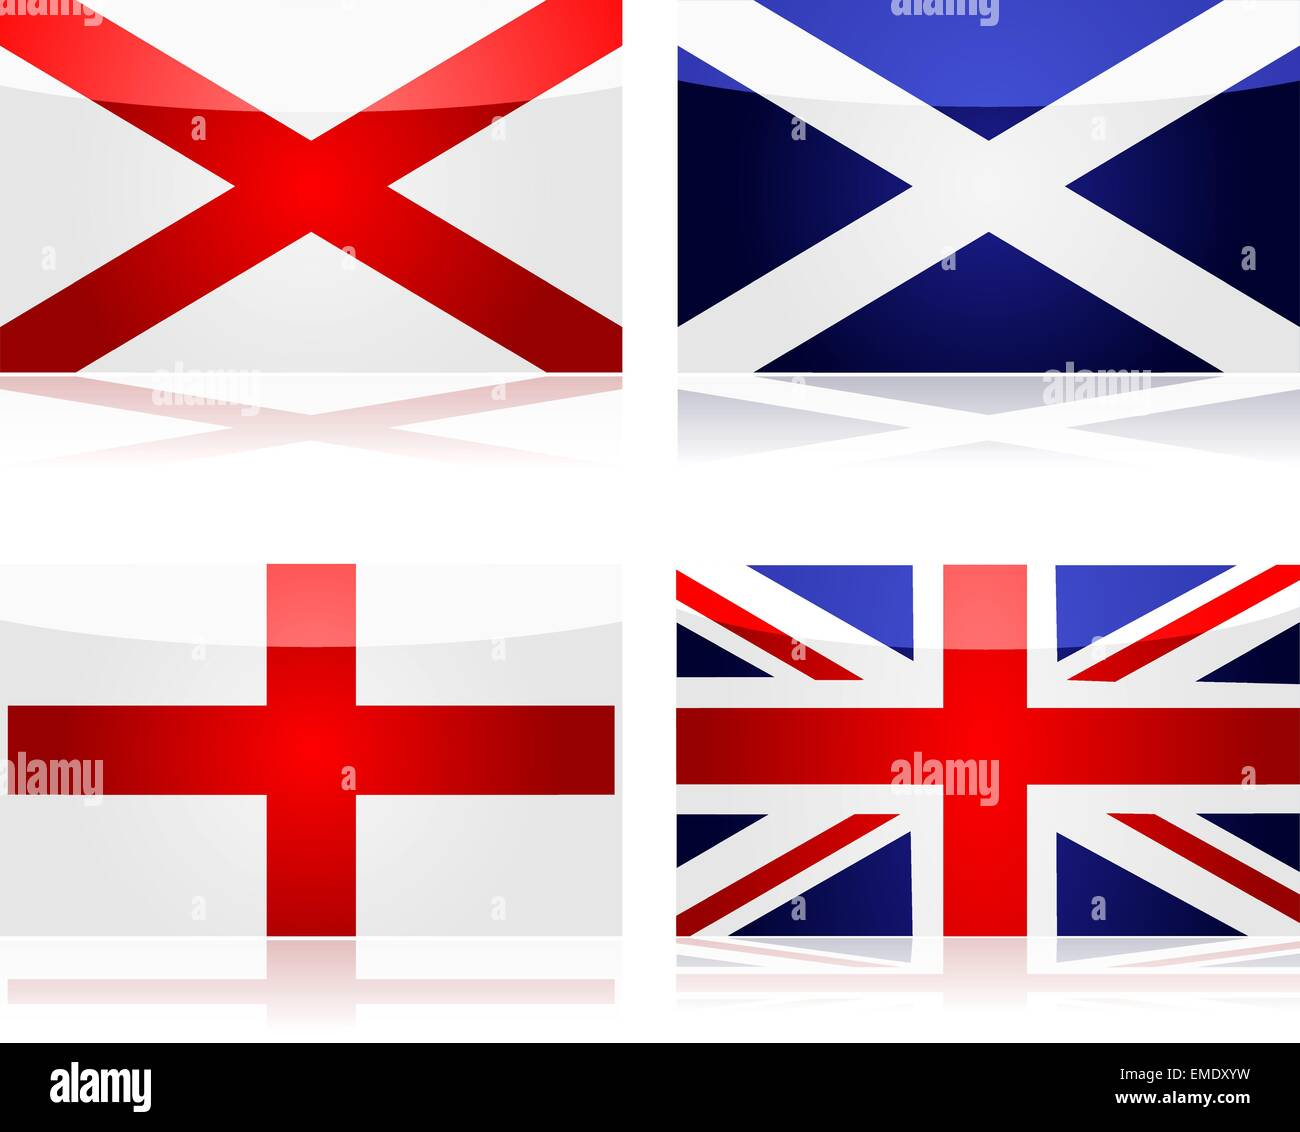 Creating the Union Jack - Stock Vector